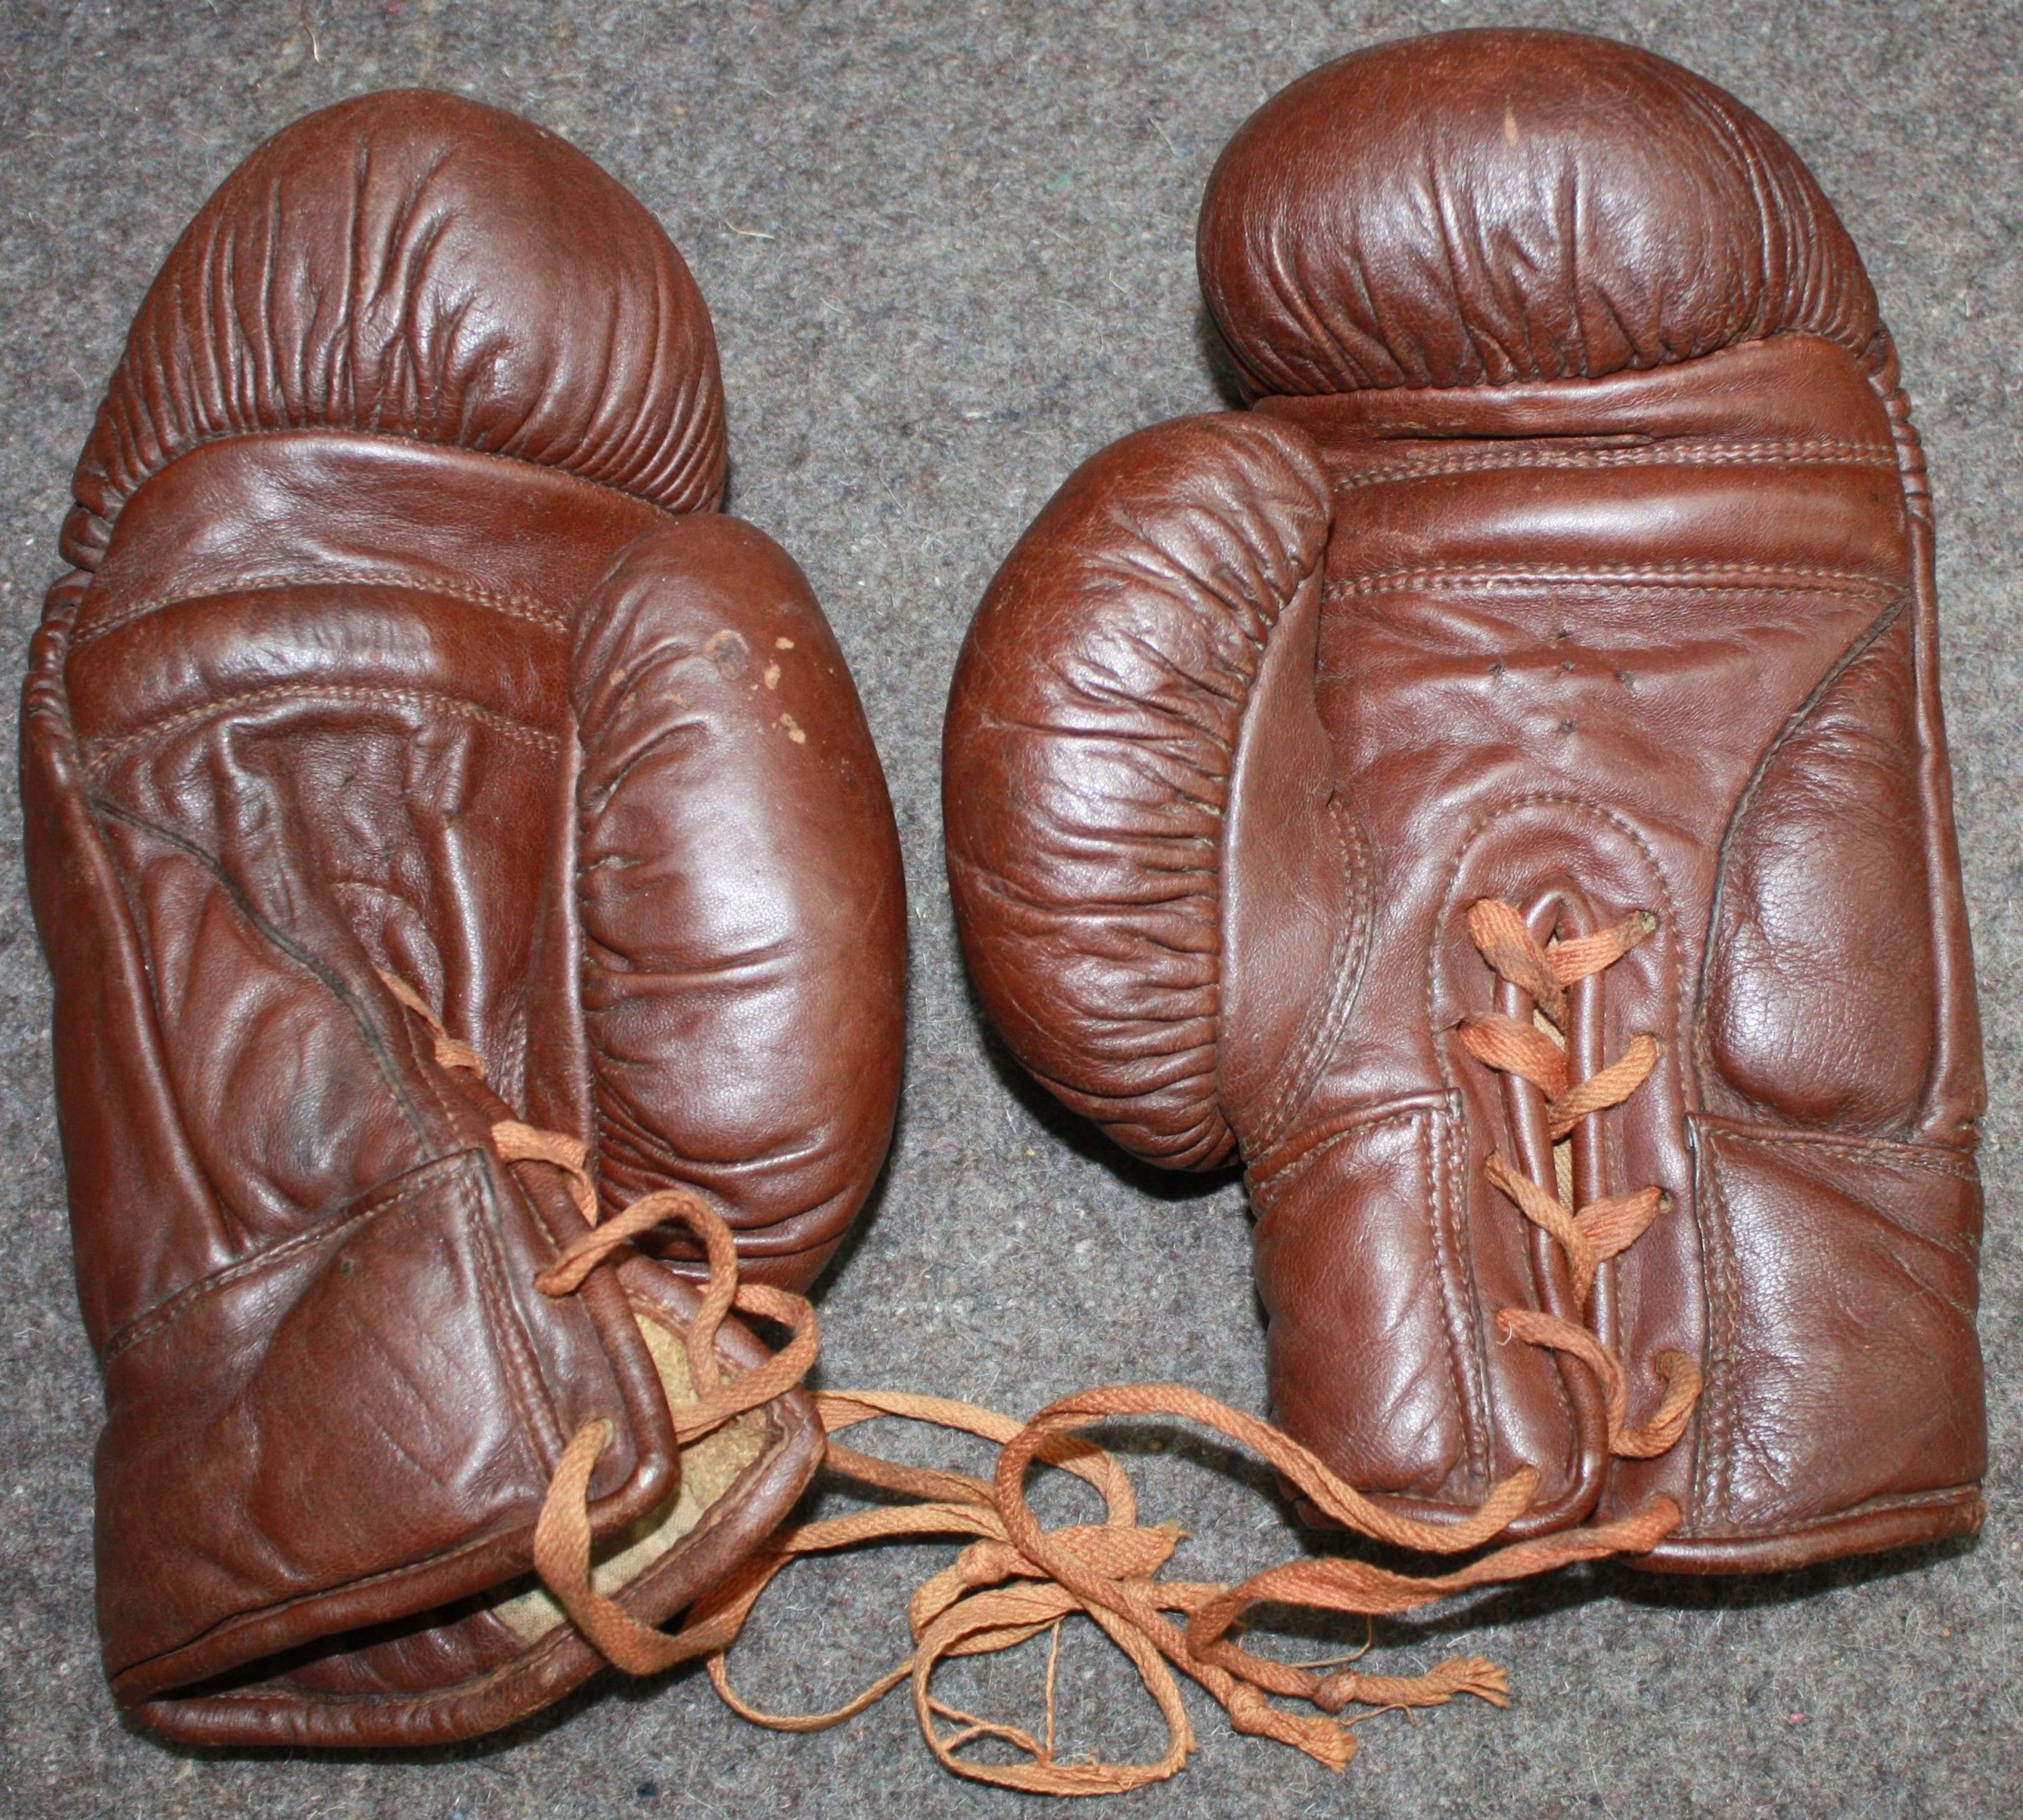 A RARE PAIR OF WWII 1942 DATED BRITISH FORCES BOXING GLOVES